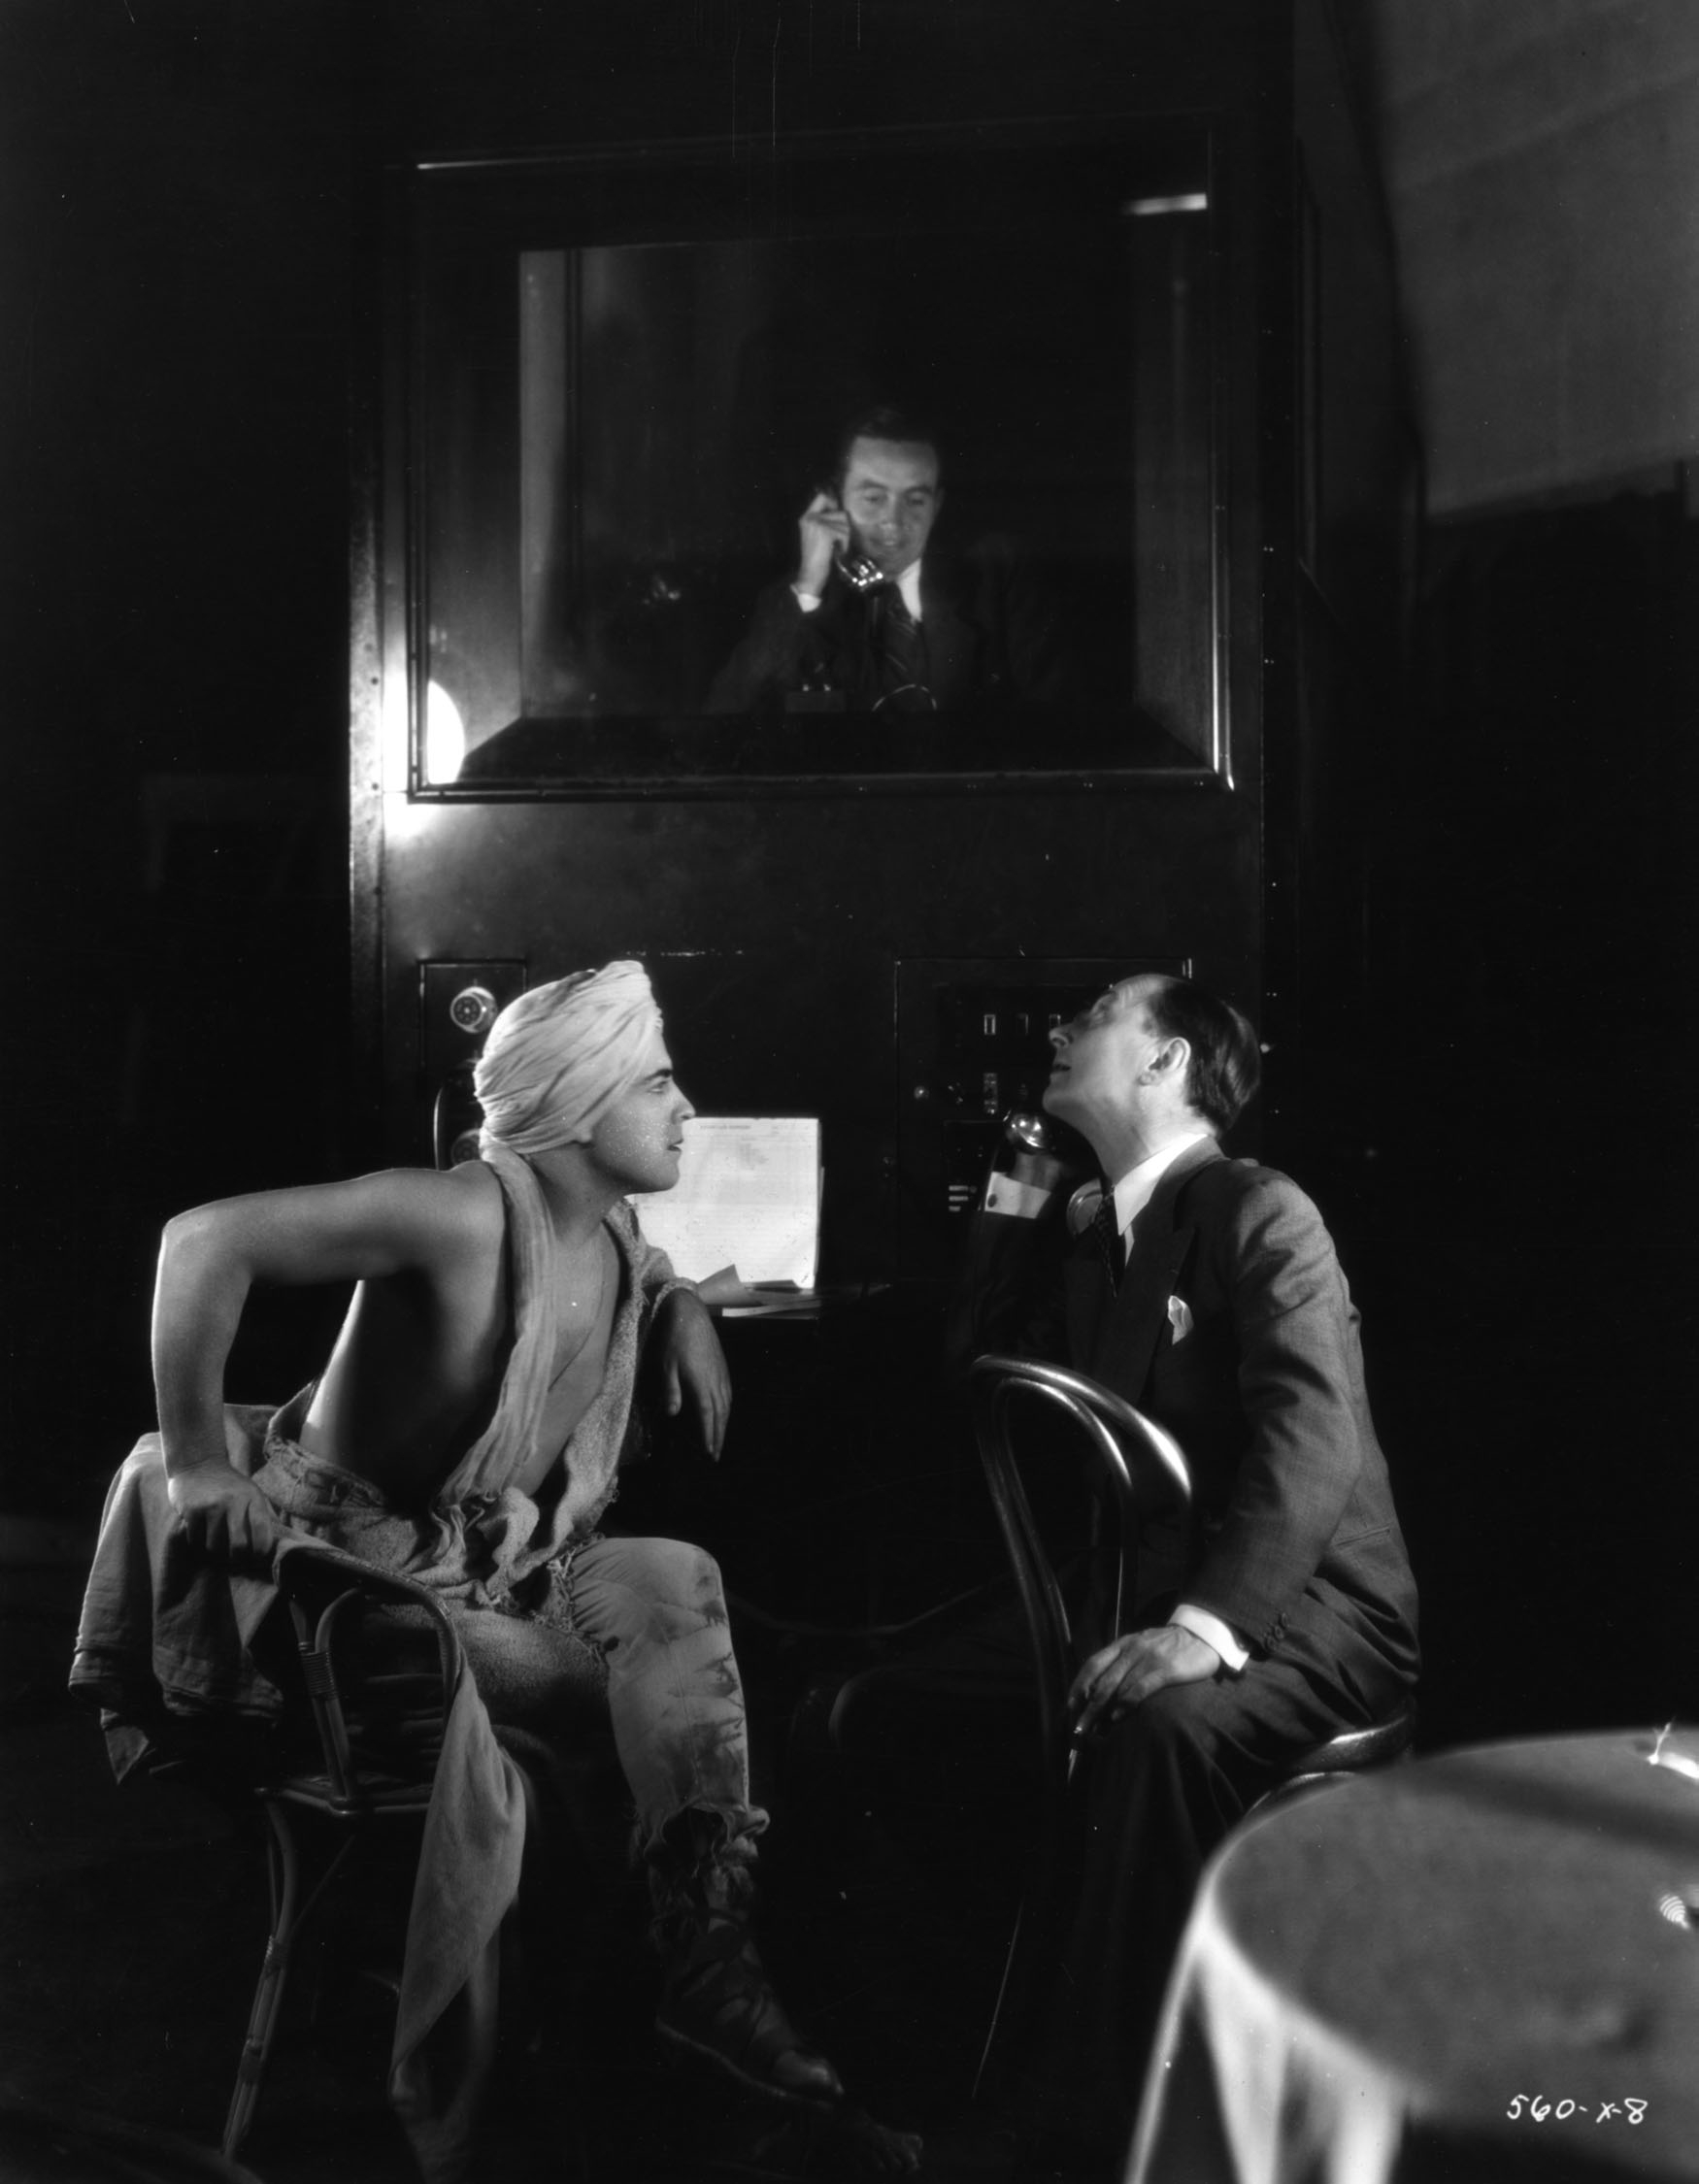 """Director Jacques Feyder and star Ramon Novarro on the set of the 1931 early sound feature Son of India (originally titled """"Son of Rajah"""").  Original caption reads, """"From his sound proof portable booth, via a horn on top of  it, the 'mixer' tells star Ramon Novarro and director Jacques Feyder what he thought of the quality of dialogue in the previous scene of Novarro's new M-G-M picture, 'Son of Rajah.'"""""""